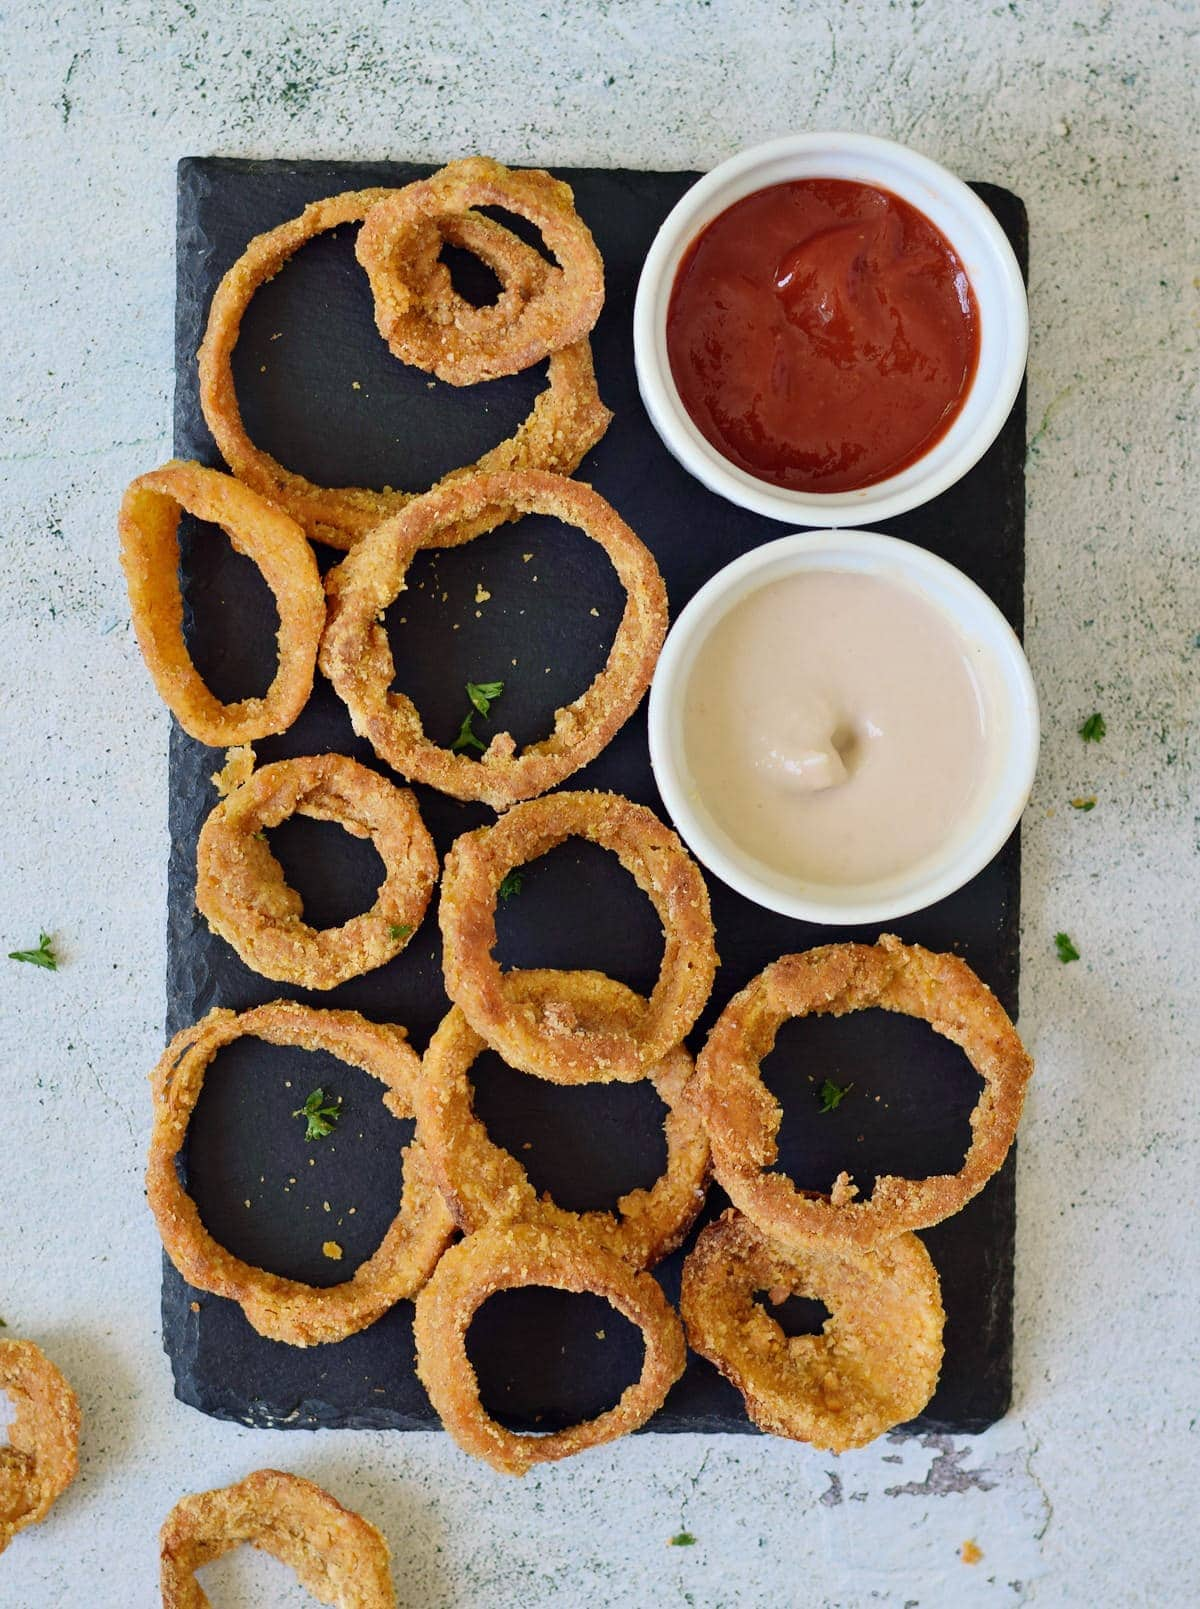 crispy oven baked onion rings on a black board with 2 dips